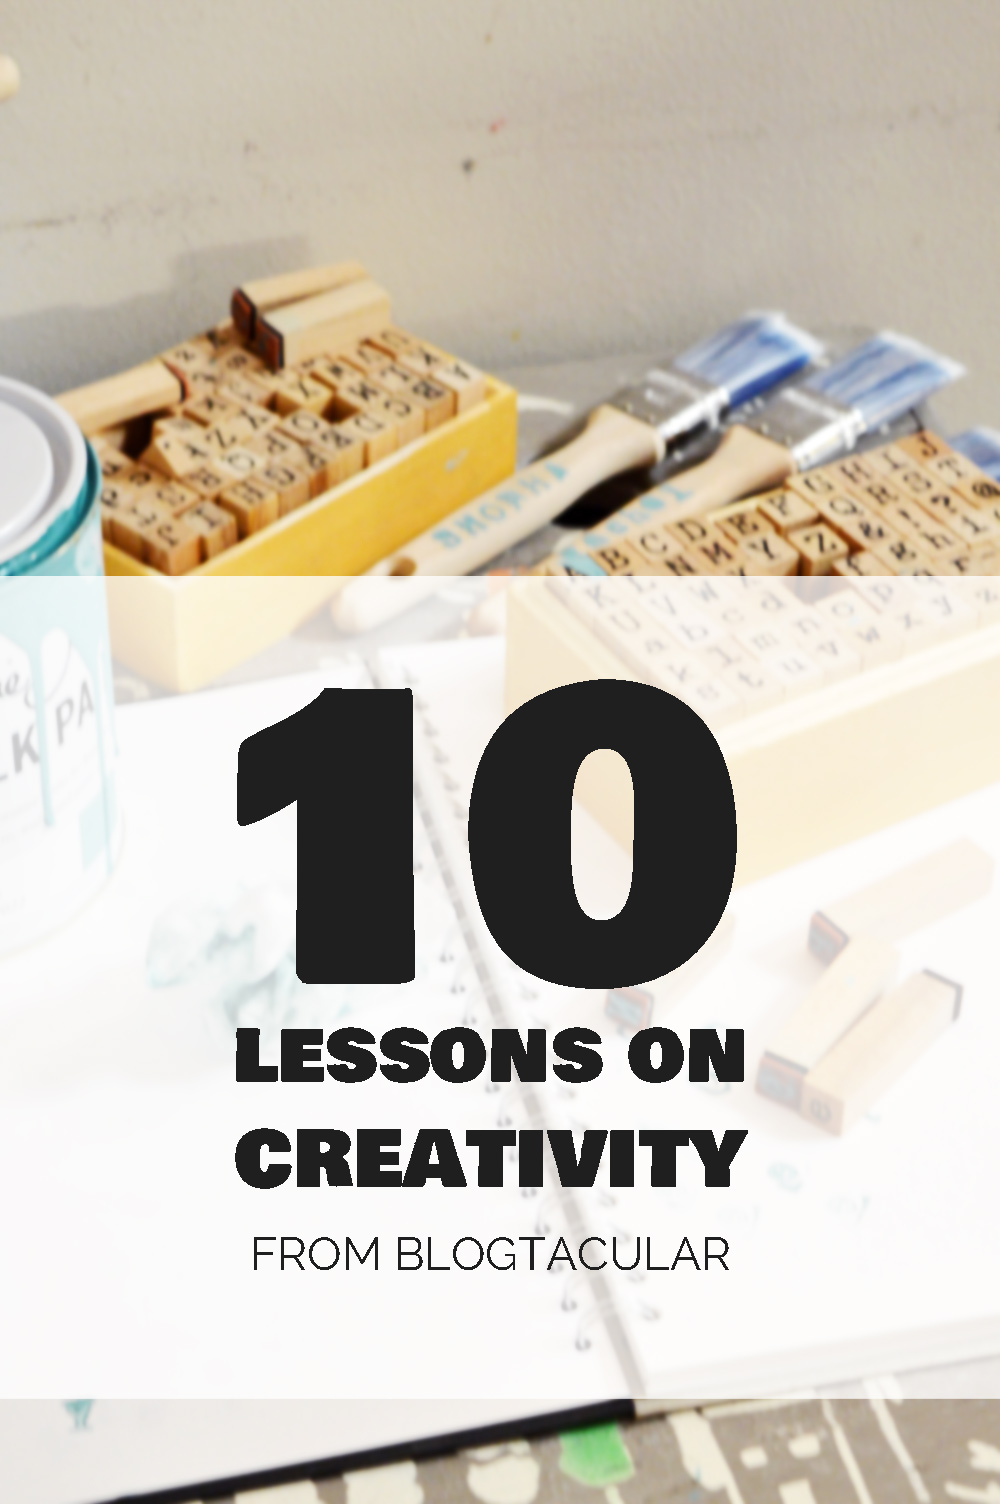 10 things I learnt about creativity at #Blogtacular 2015